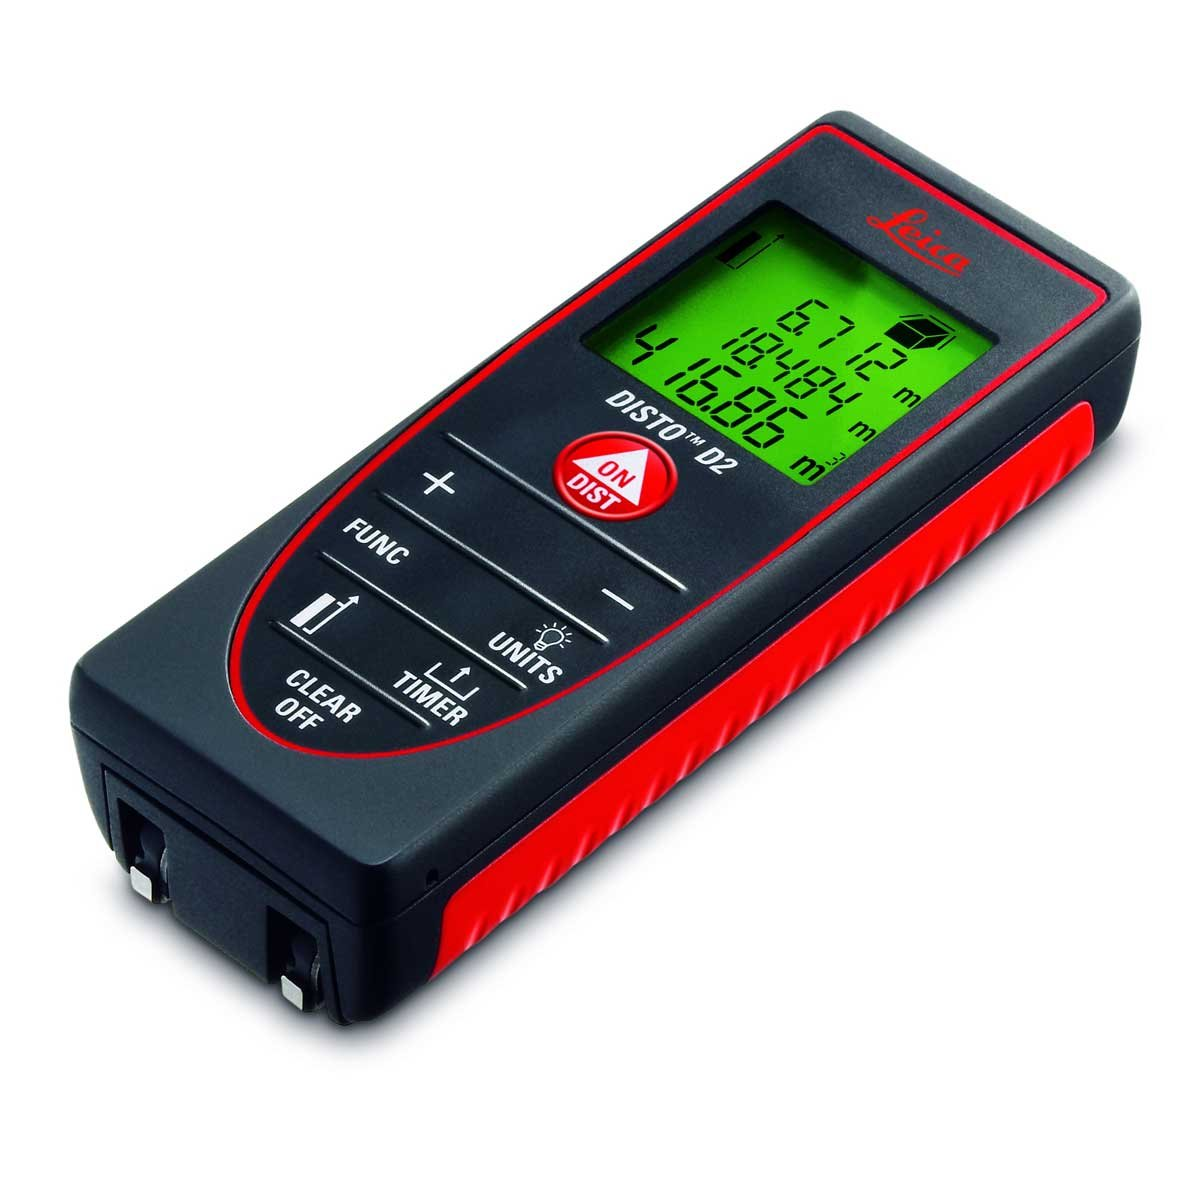 Leica DISTO D2 200ft Laser Distance Measurer Review